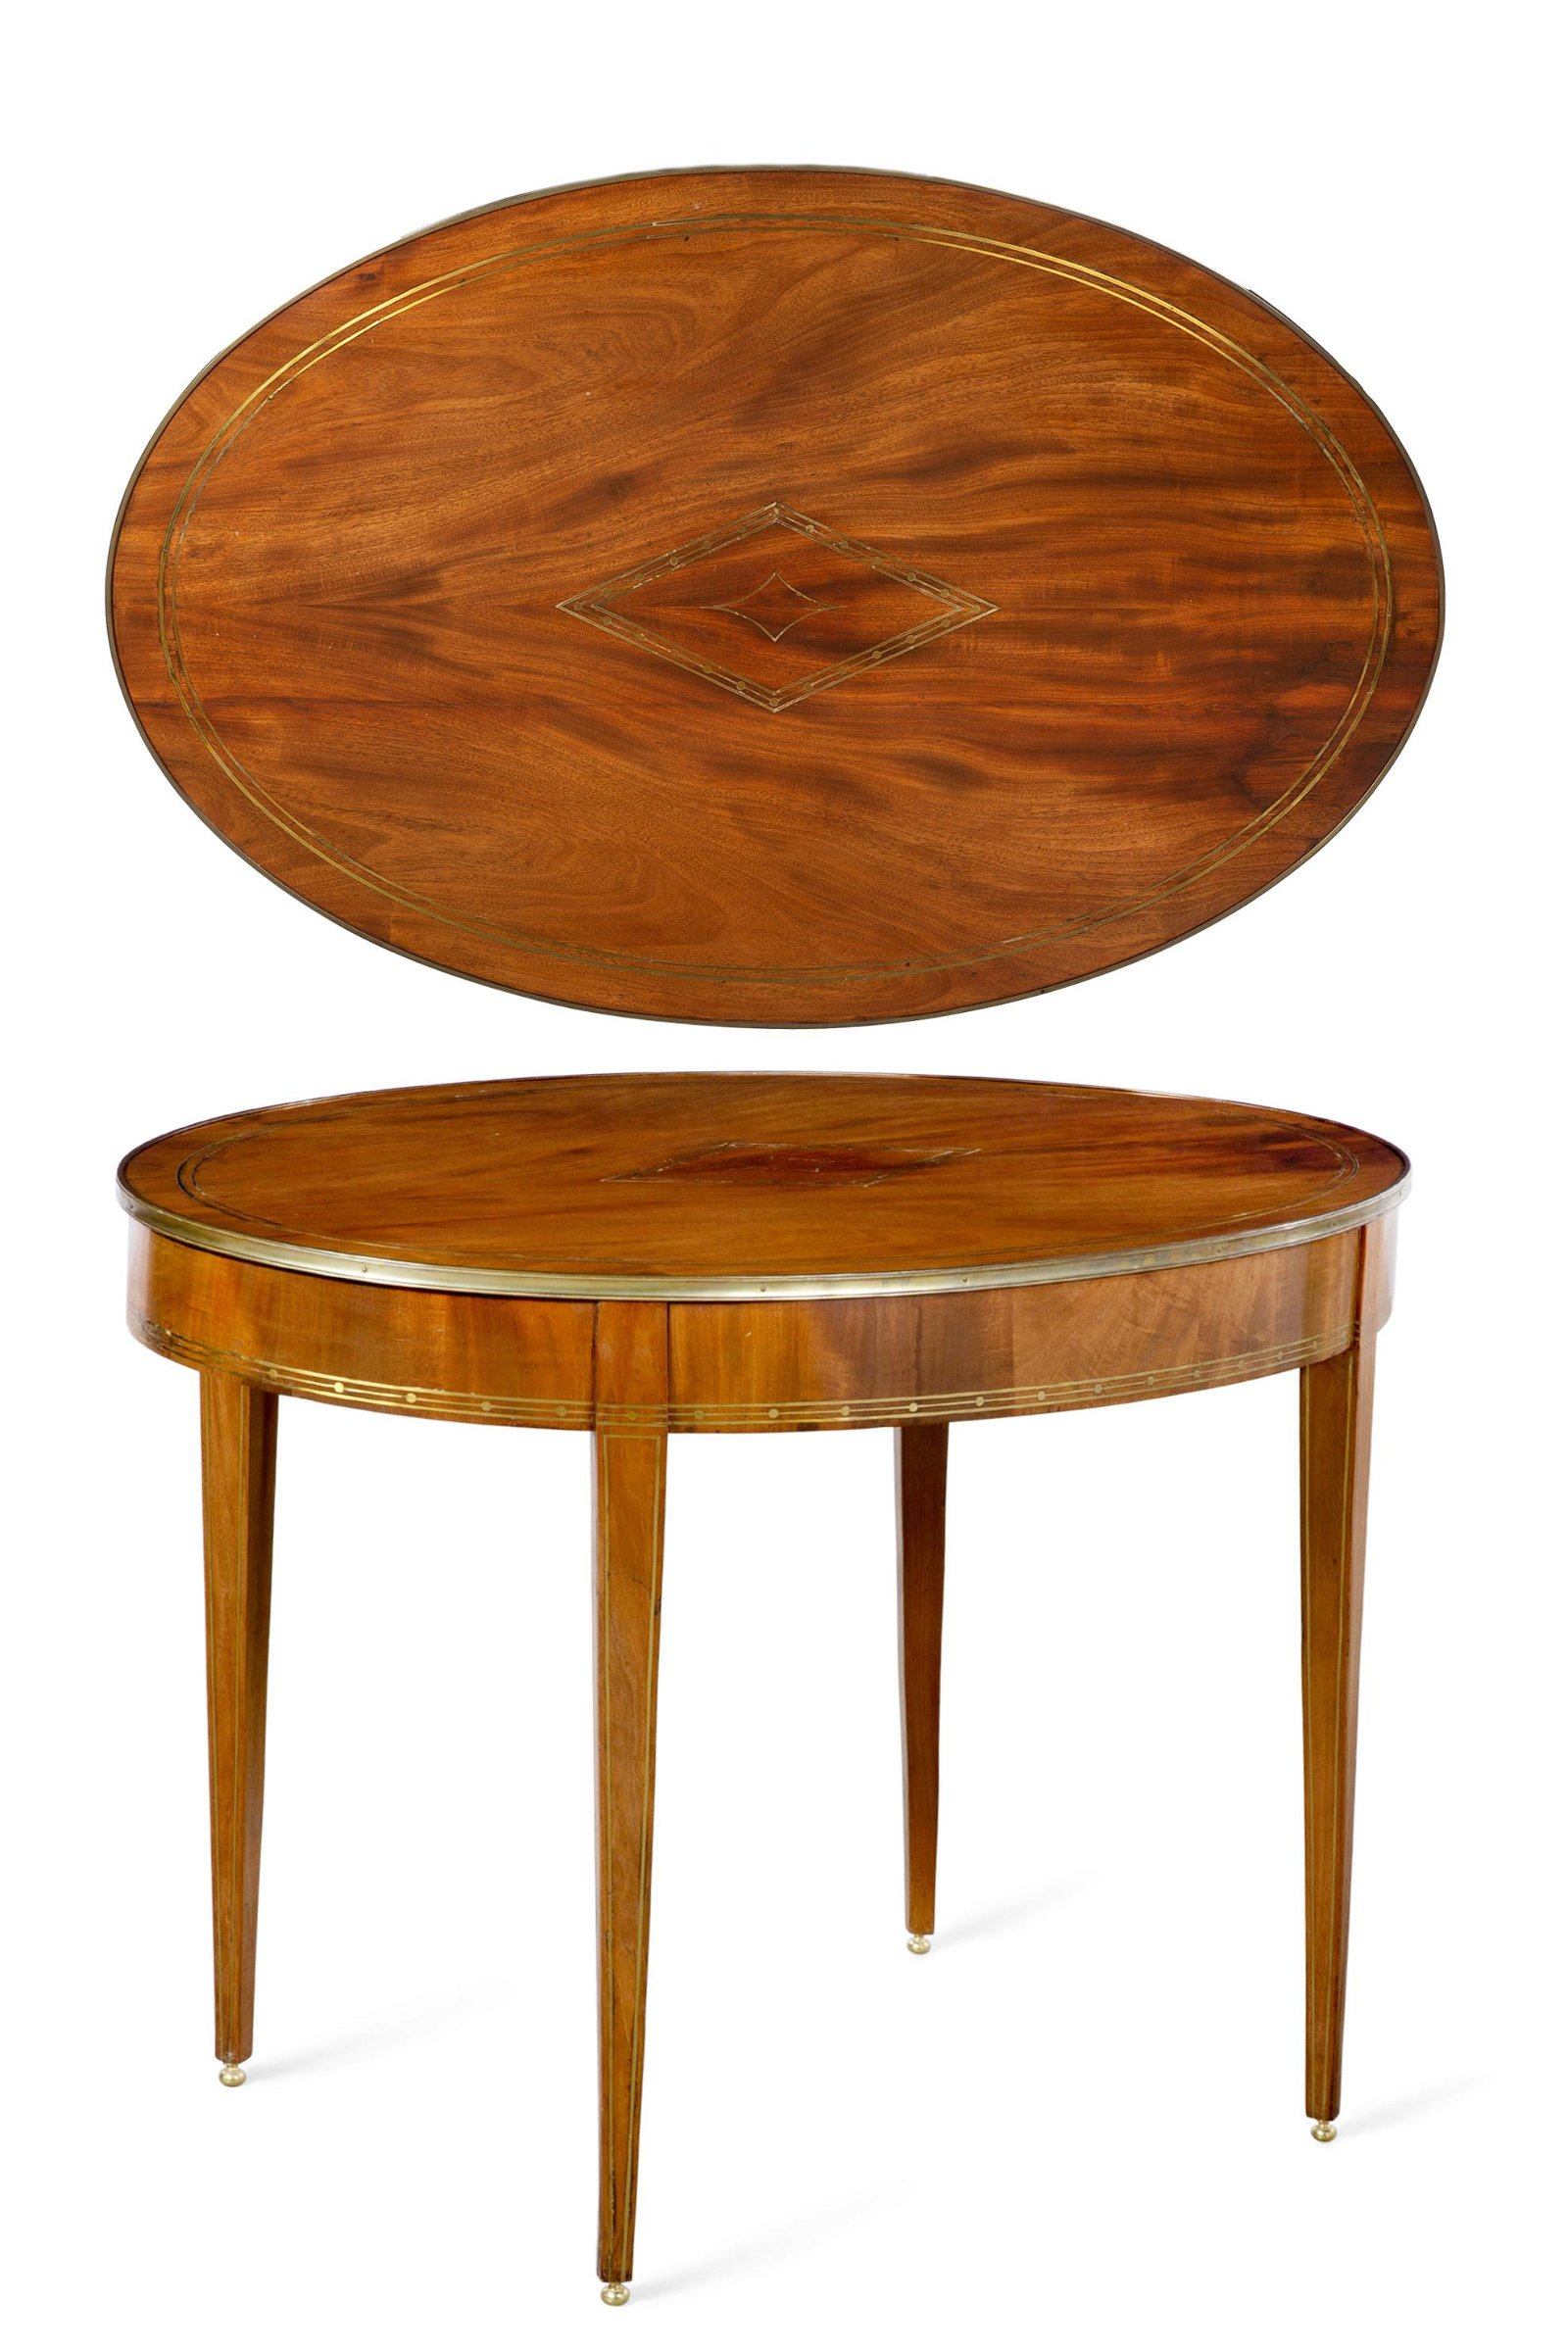 A Baltic Neoclassical mahogany oval center table